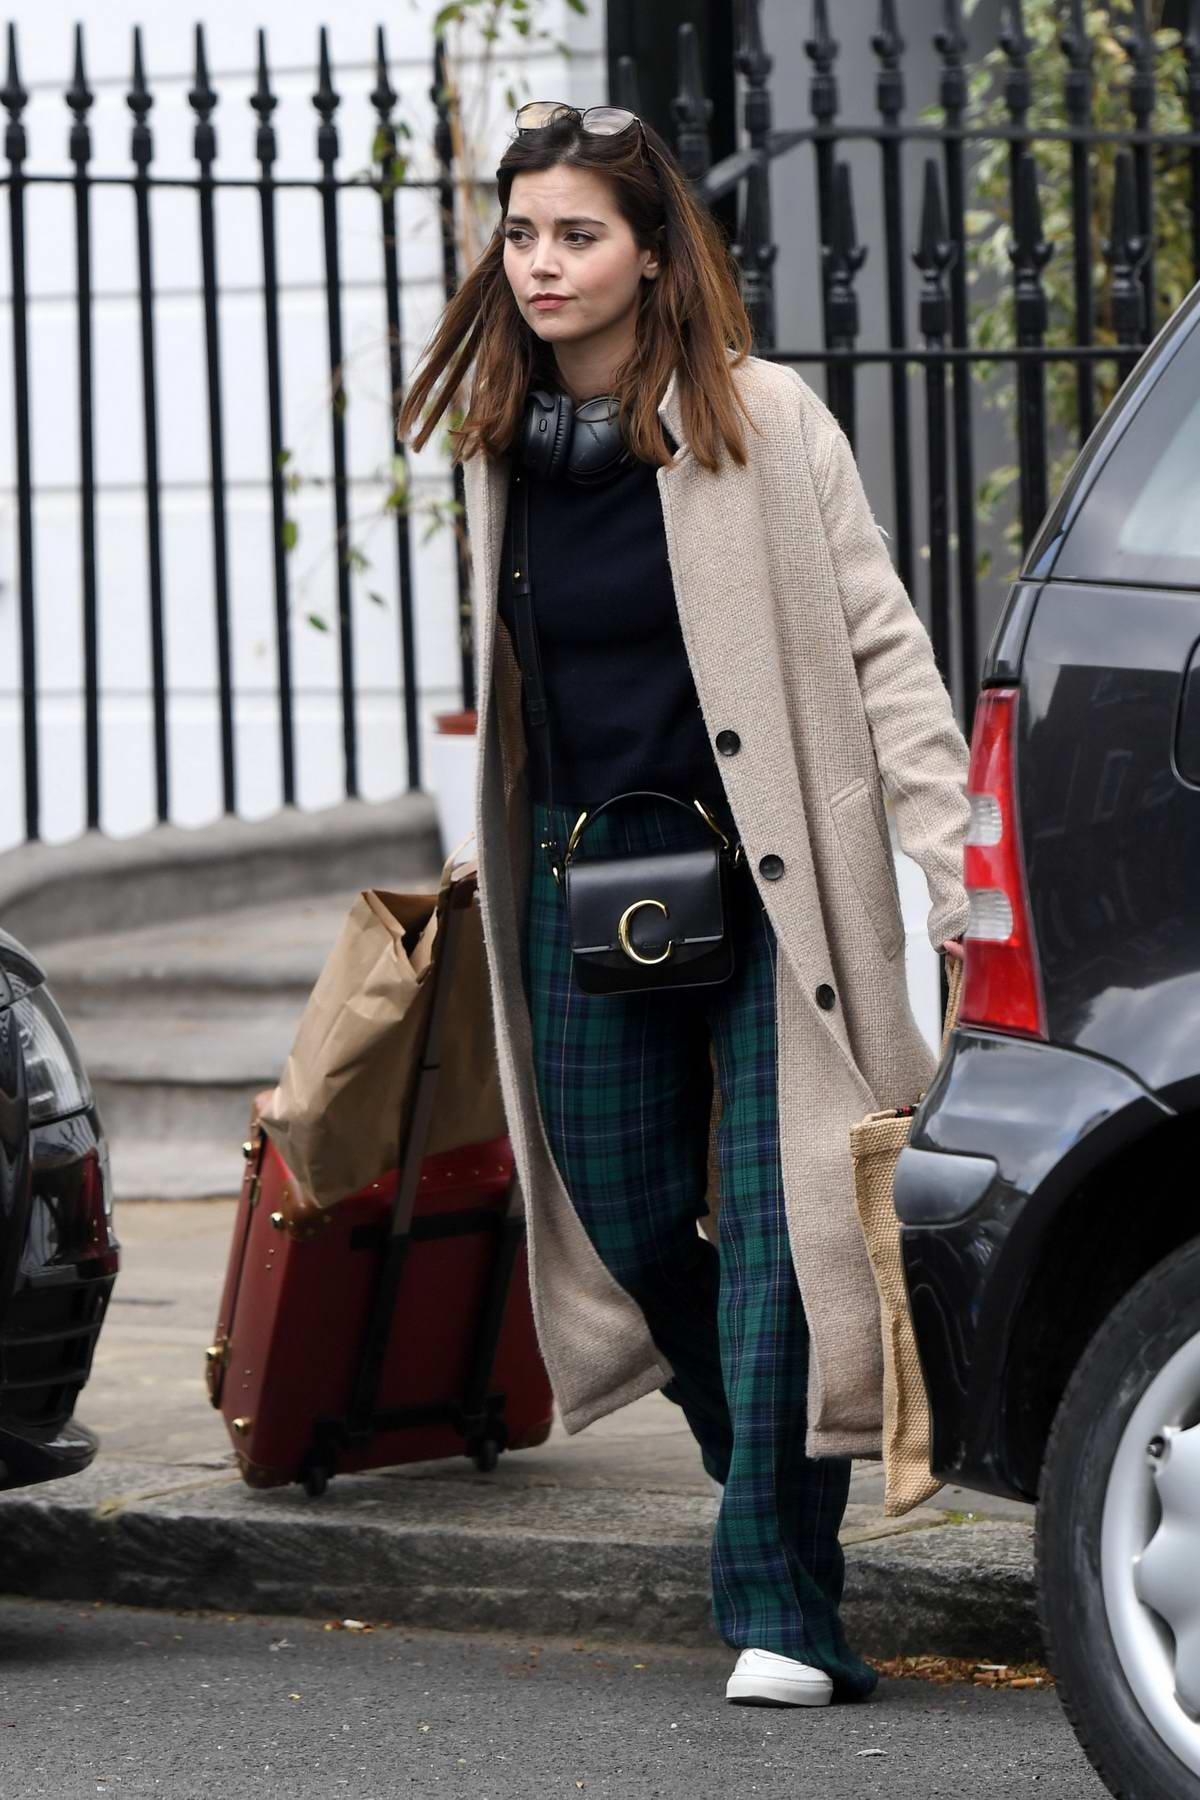 Jenna Coleman looks lovely in a beige long coat with tartan plaid trousers as she heads out in London, UK